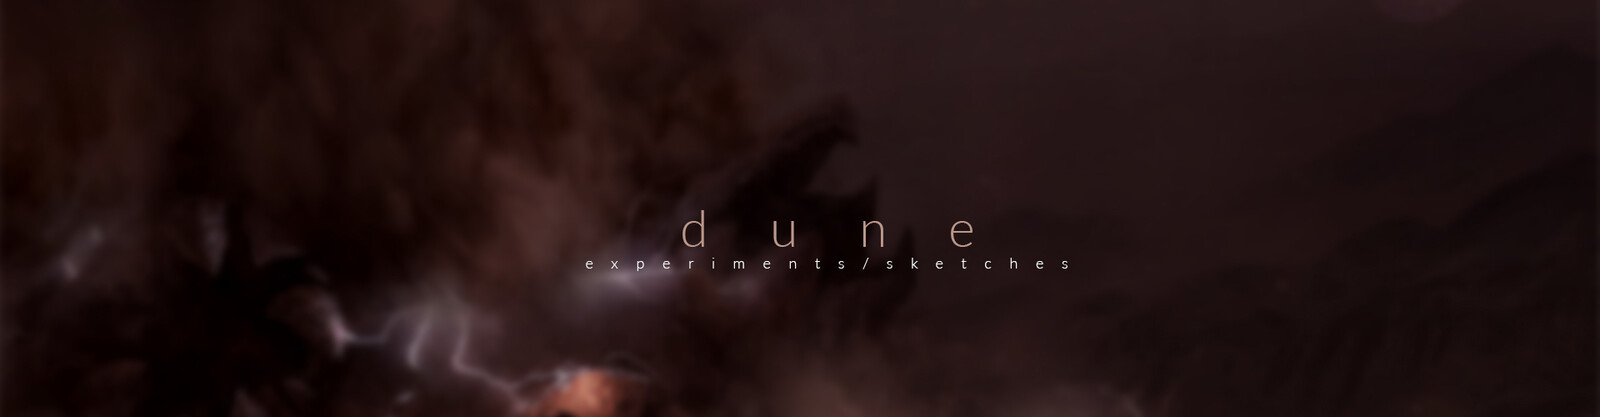 Project Dune